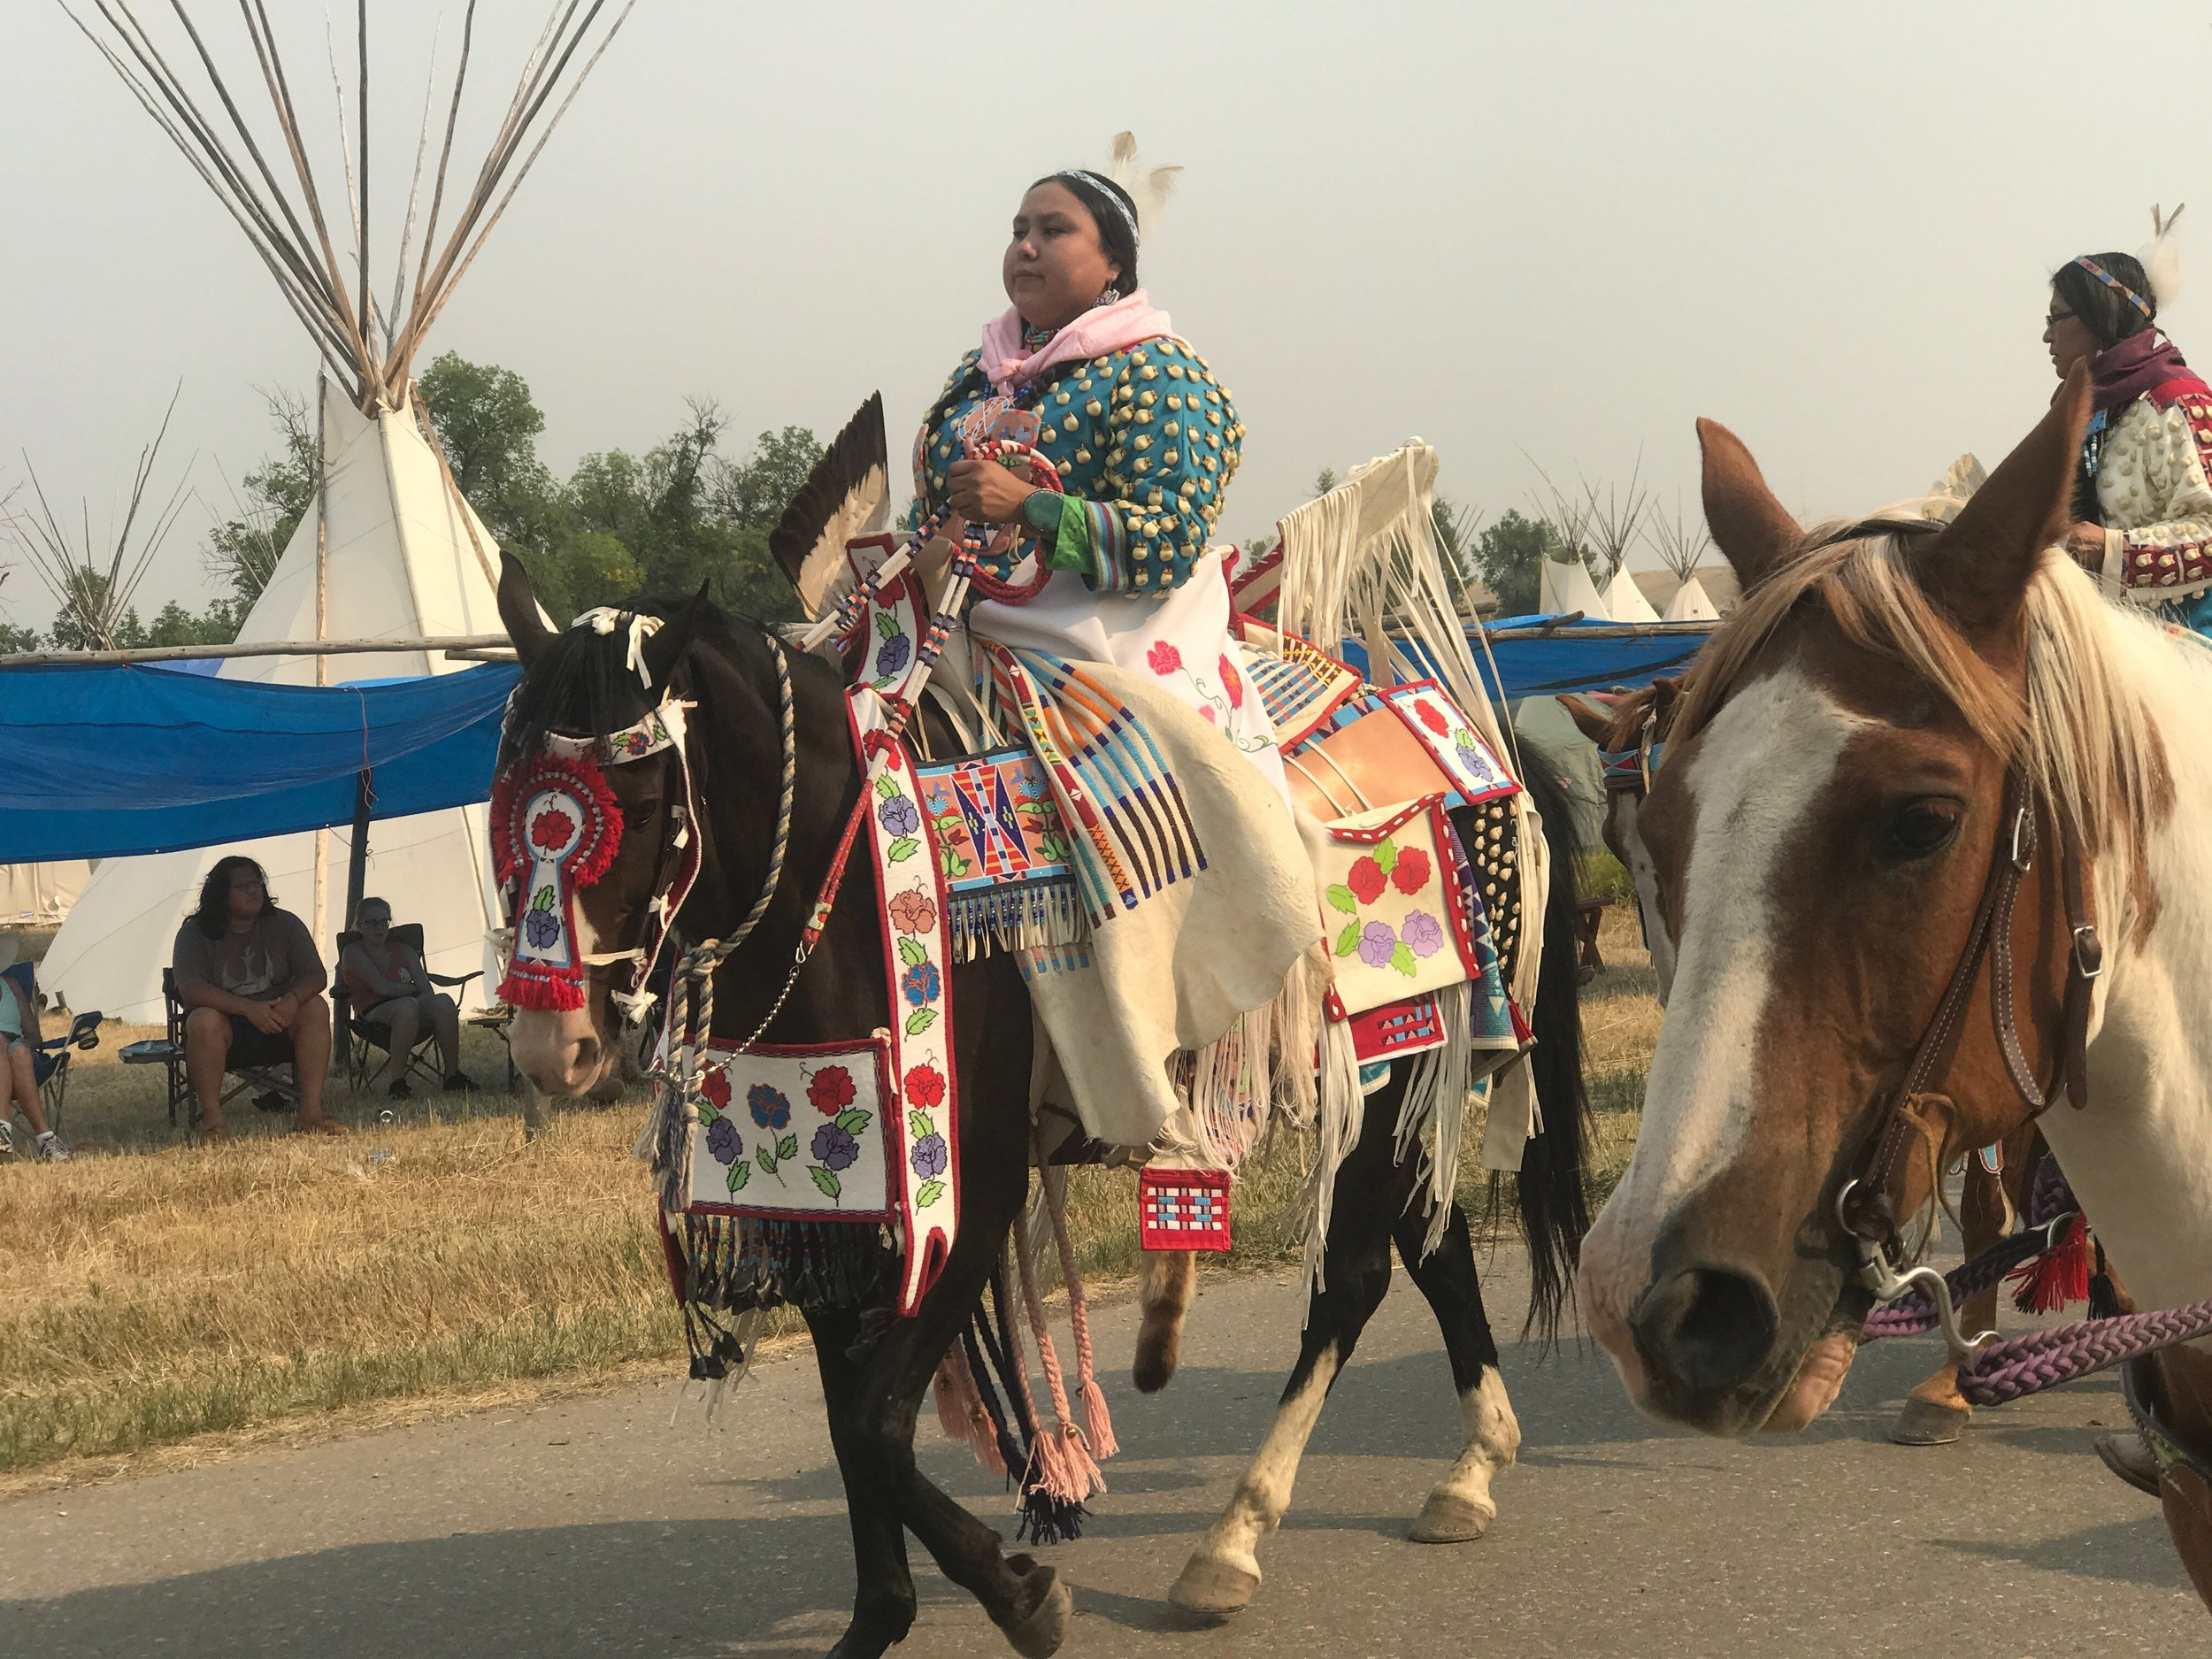 Parading through the encampment in Crow Agency, Montana.